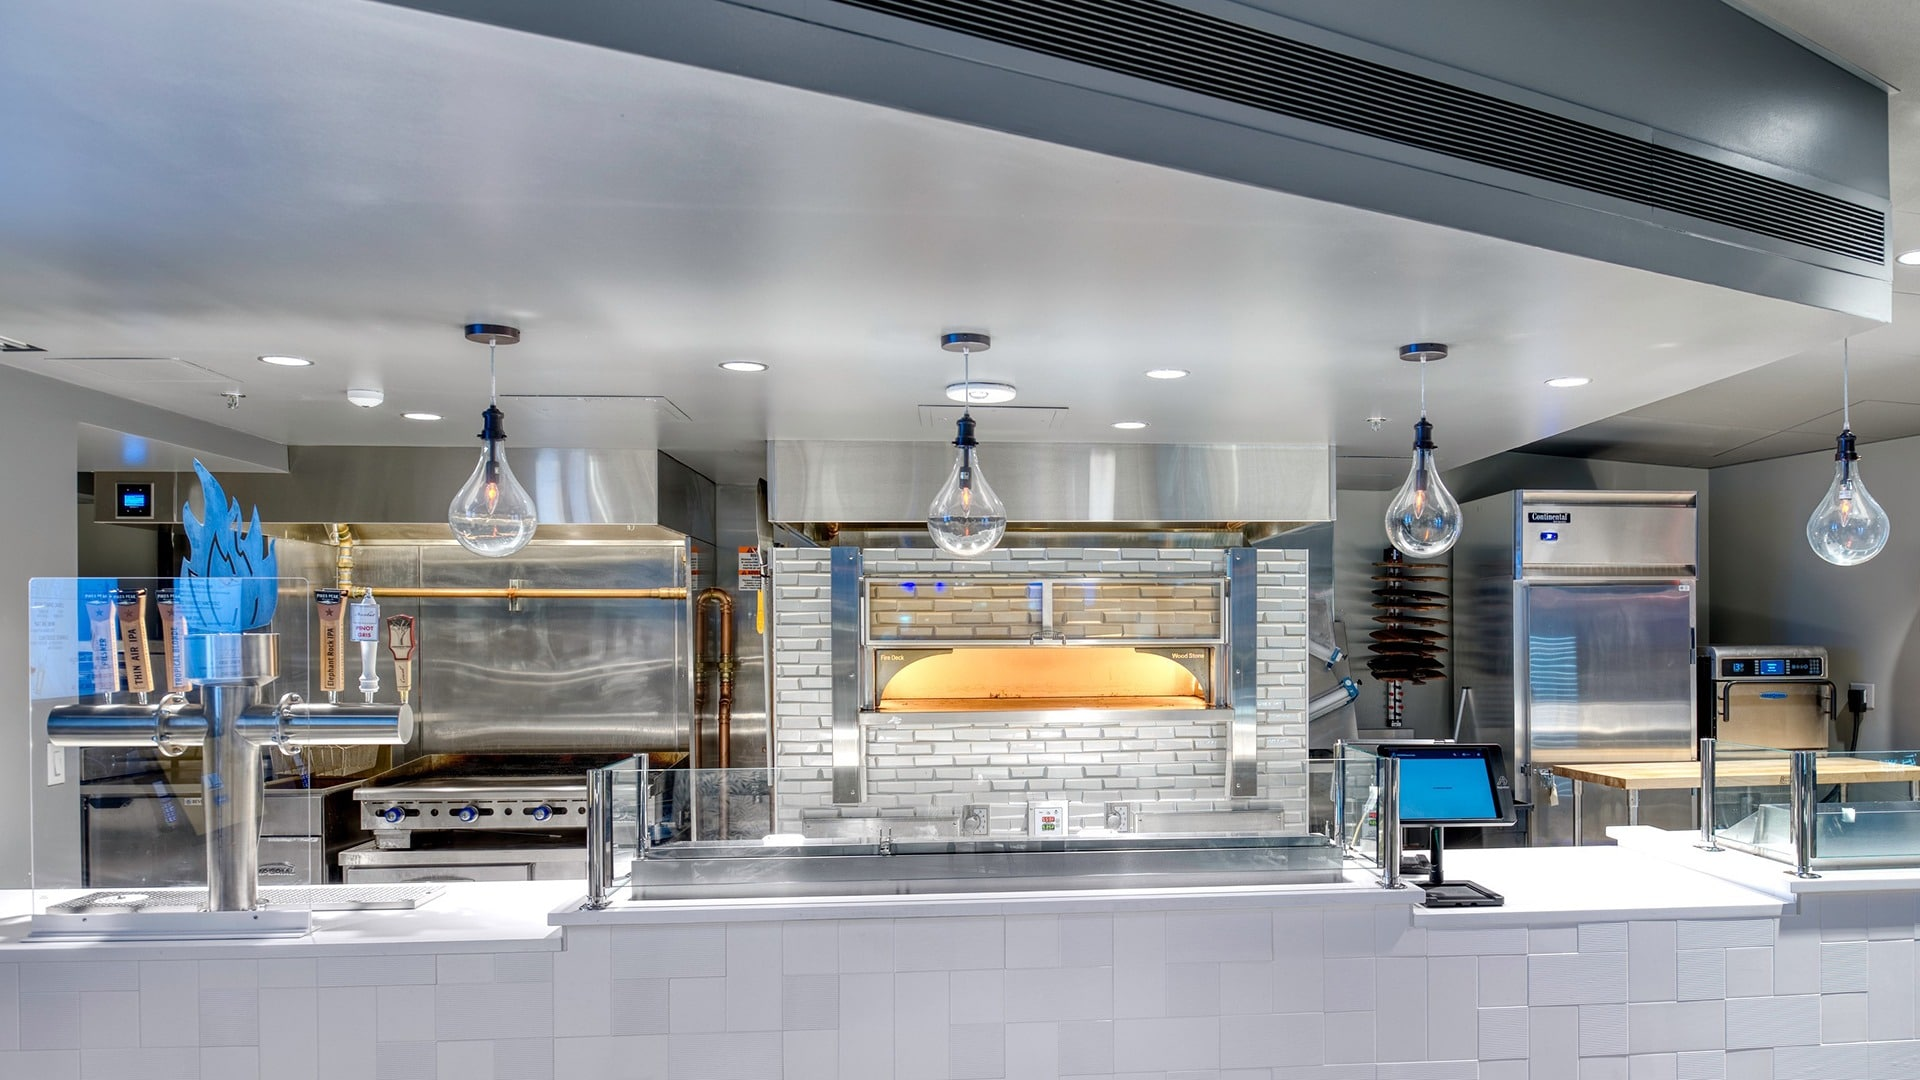 A look at The Flame Cafe kitchen